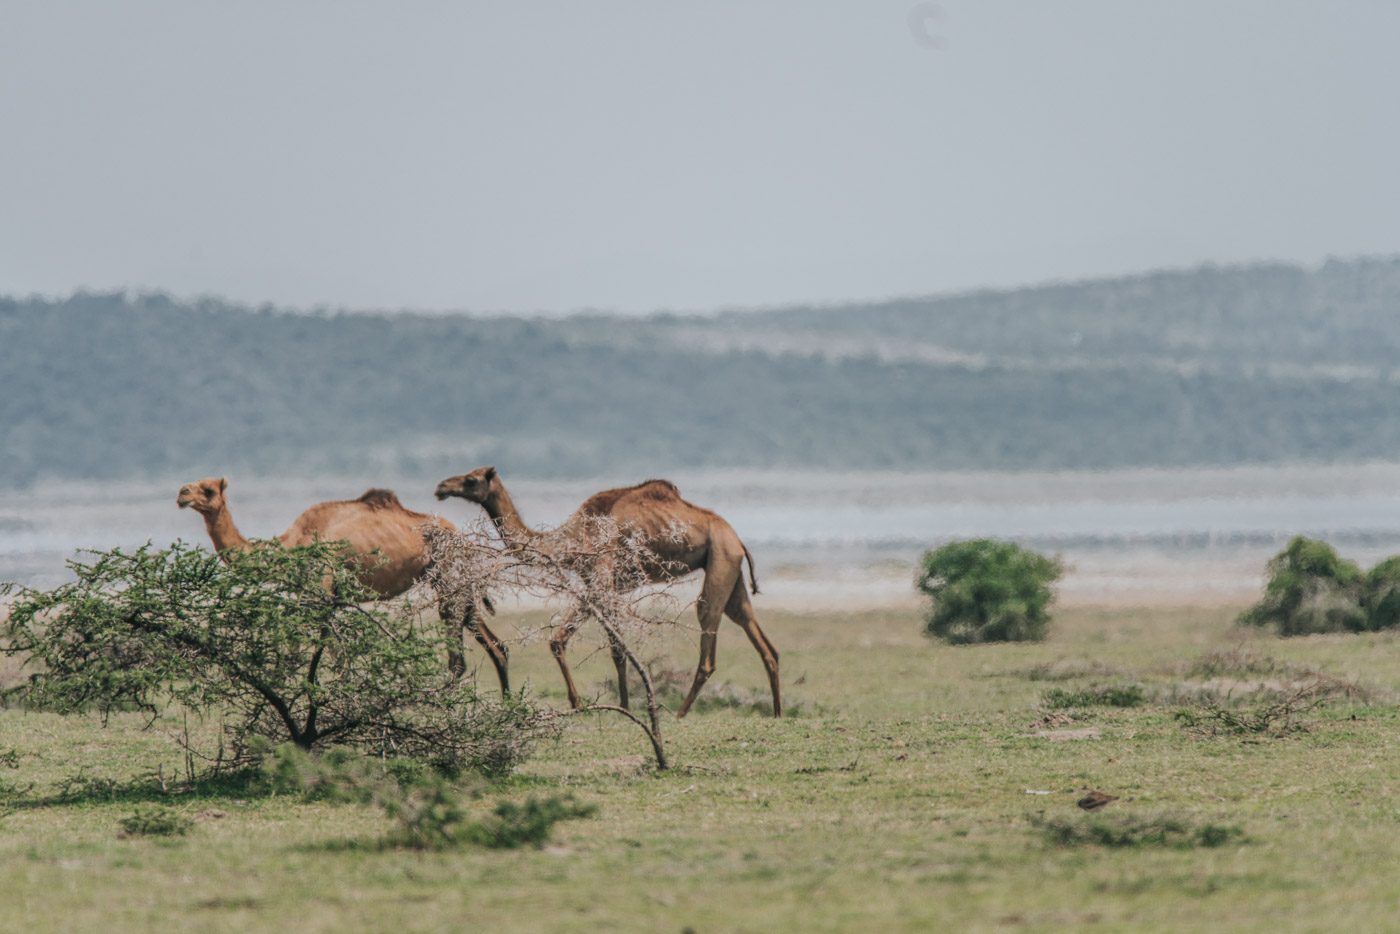 Camels roaming around the lake. Ethiopia can be a bit bizarre like that!